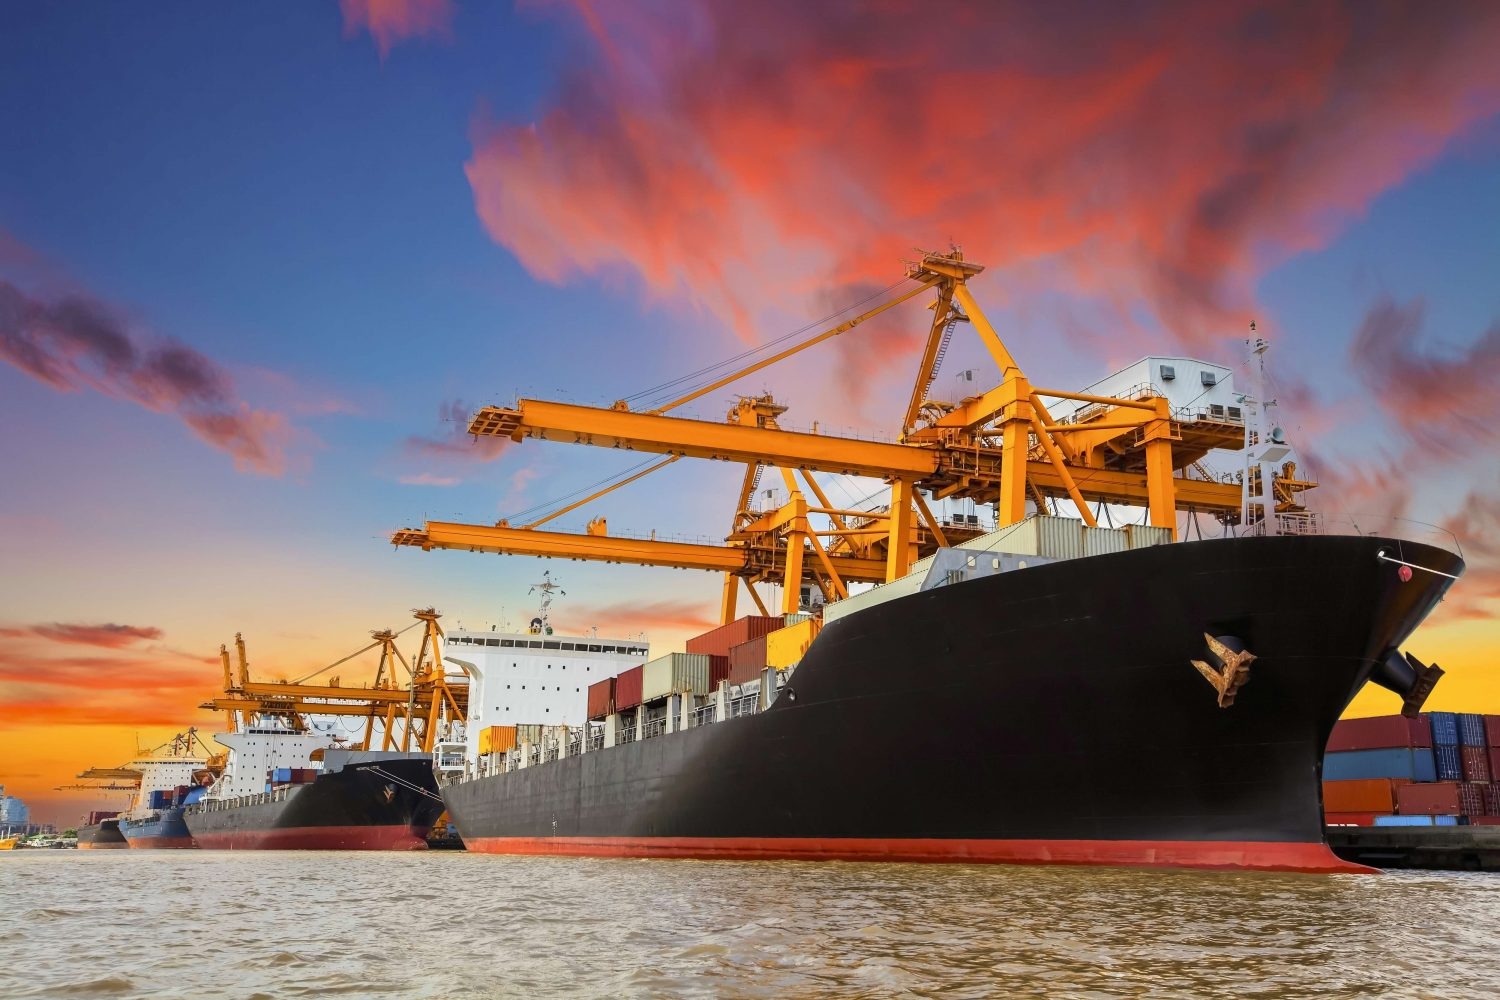 Port of Buenos Aires to Modernize Maritime System Using Blockchain